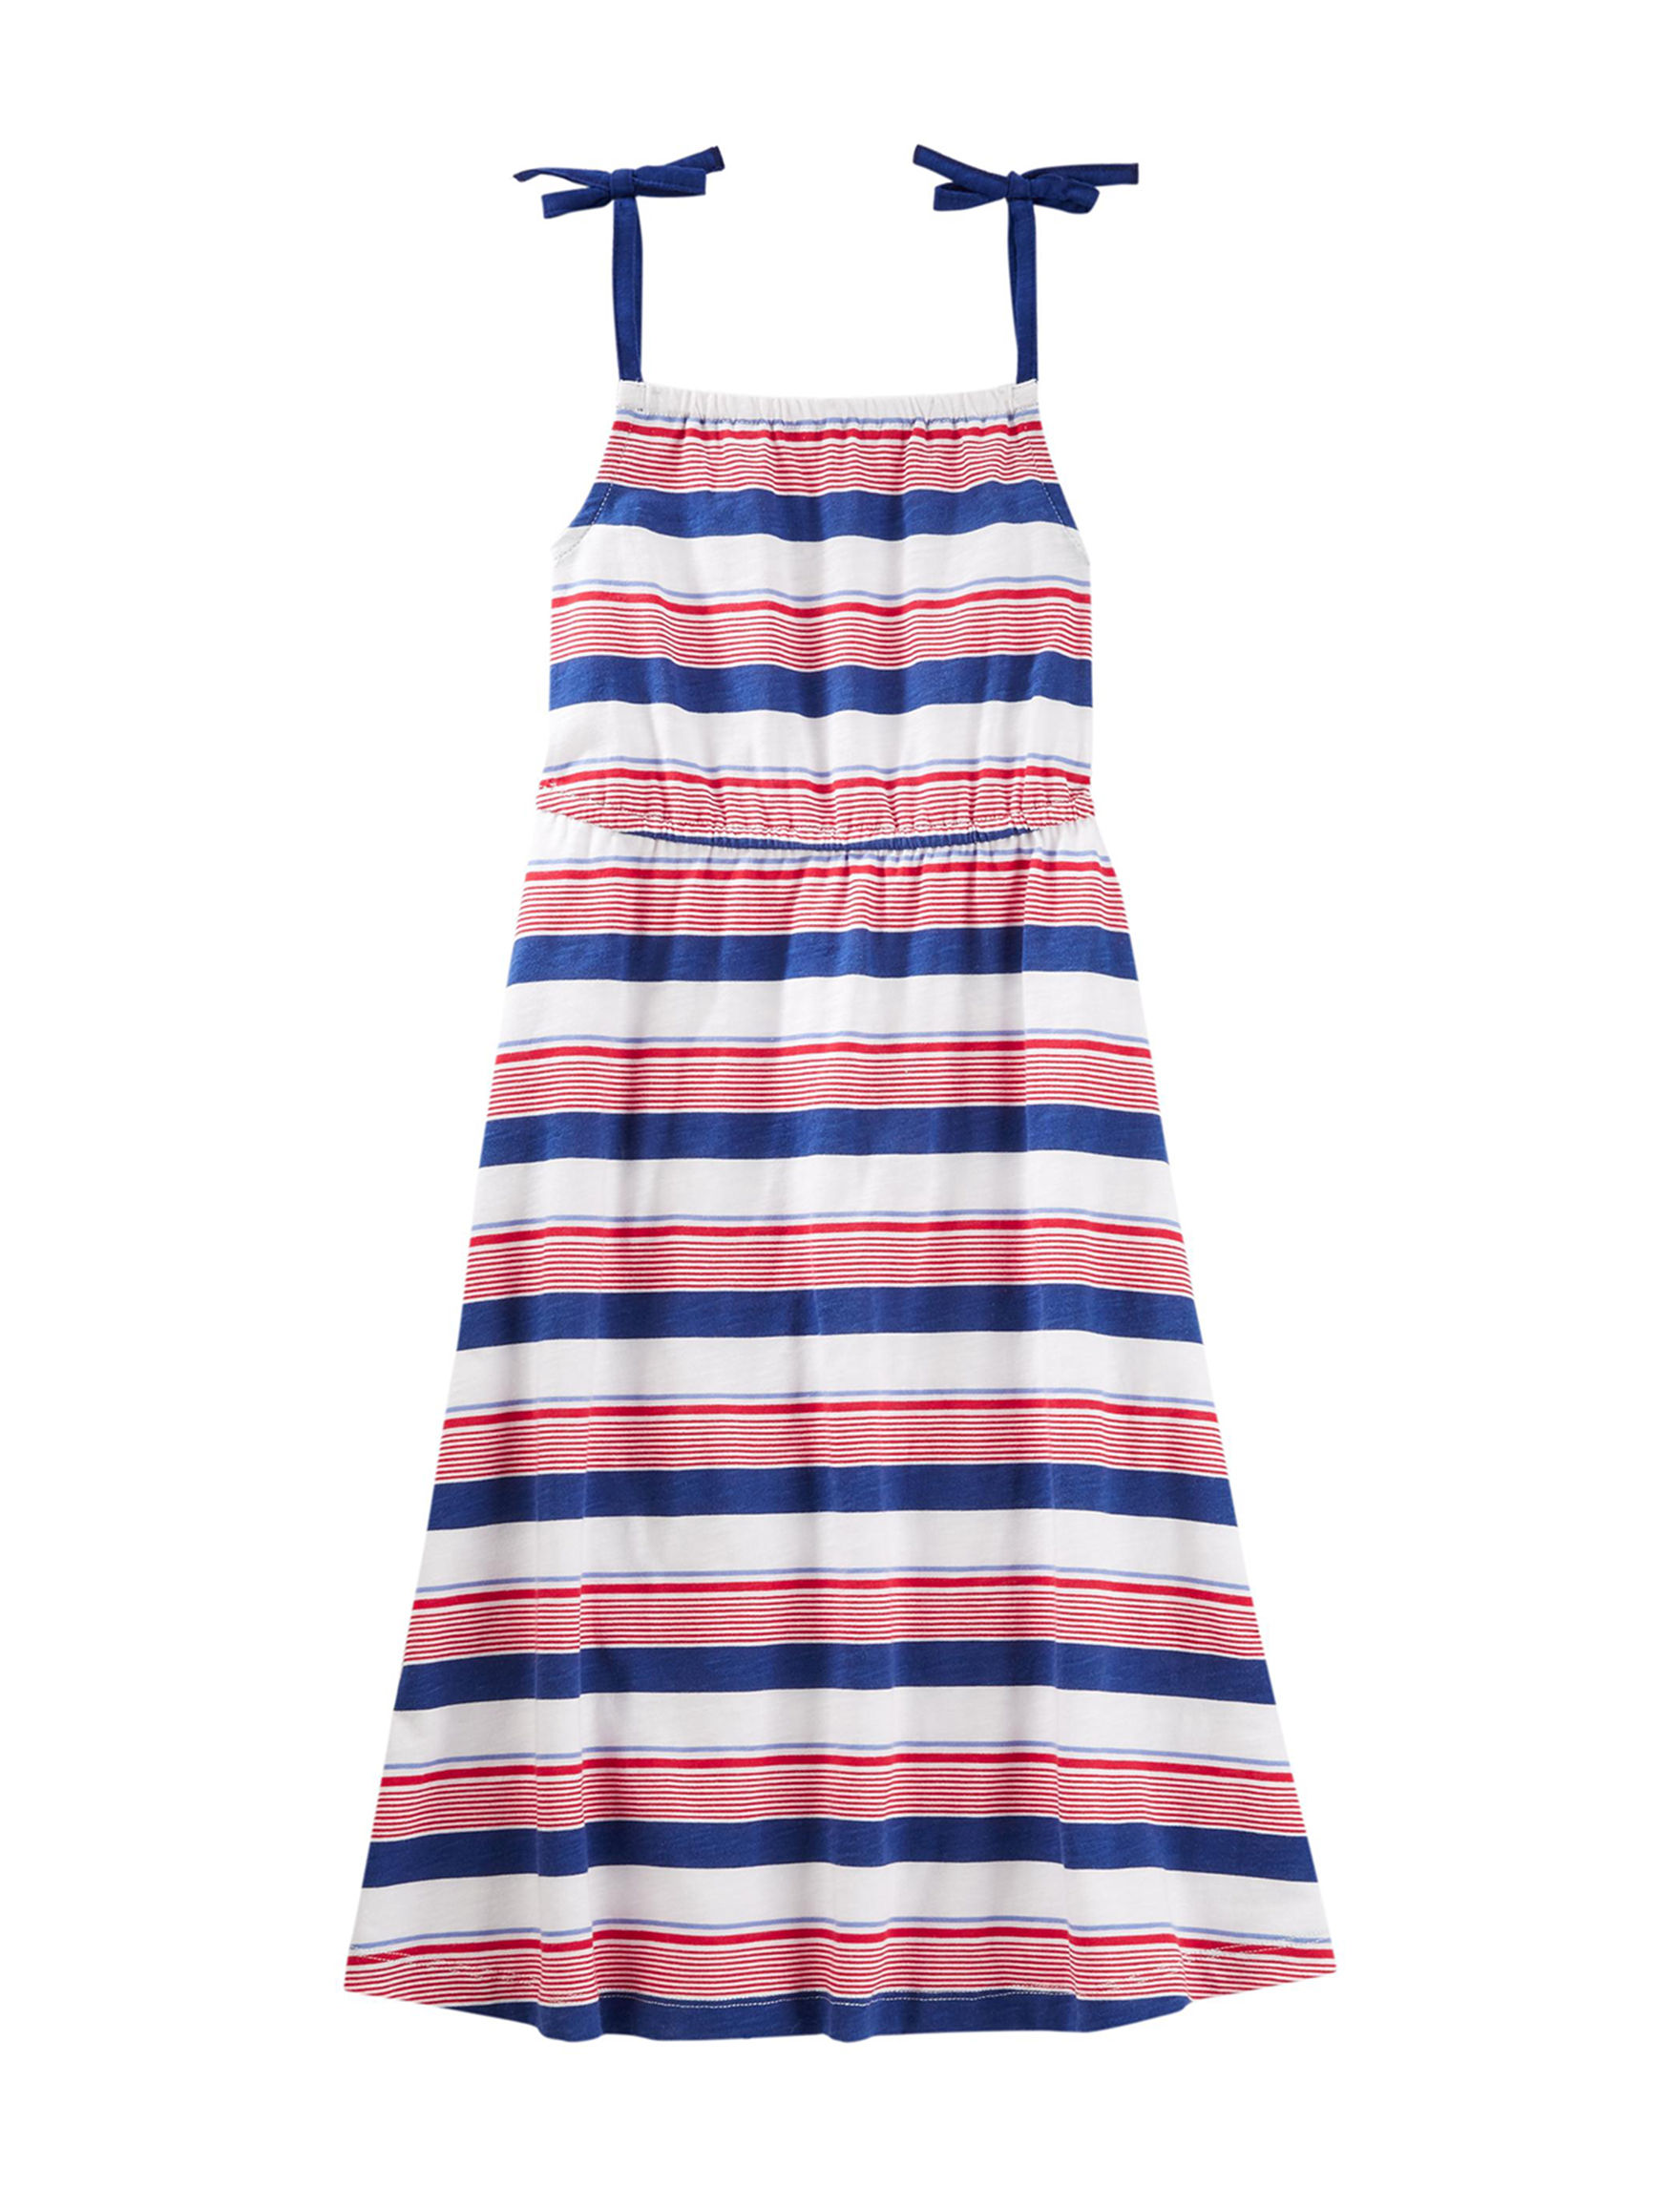 d0e17df4ddd1 OshKosh B gosh Striped Dress - Girls 4-8